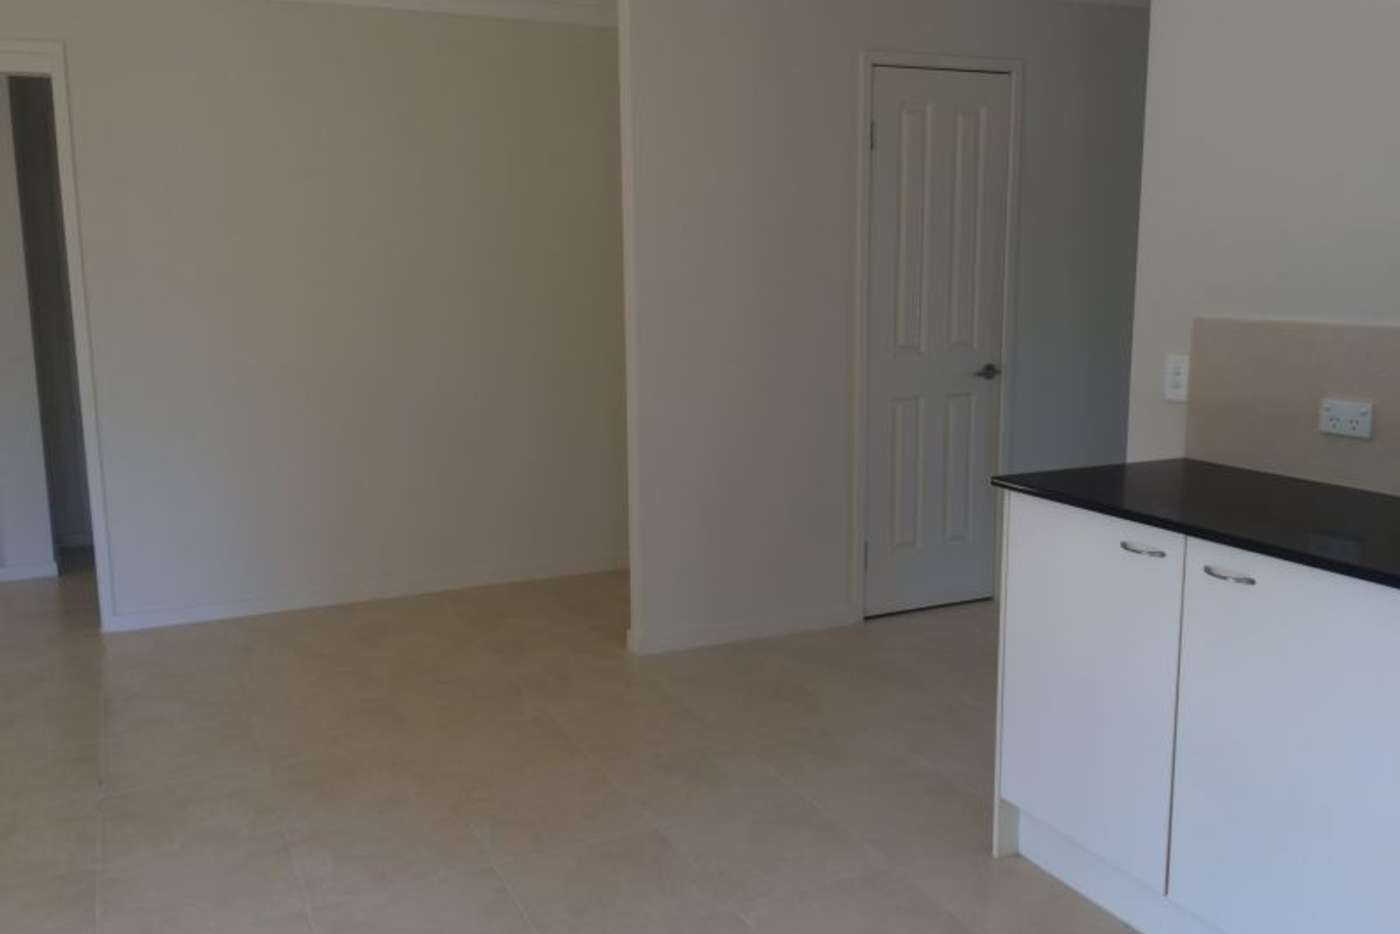 Sixth view of Homely house listing, 2/46 Harris Street, Labrador QLD 4215